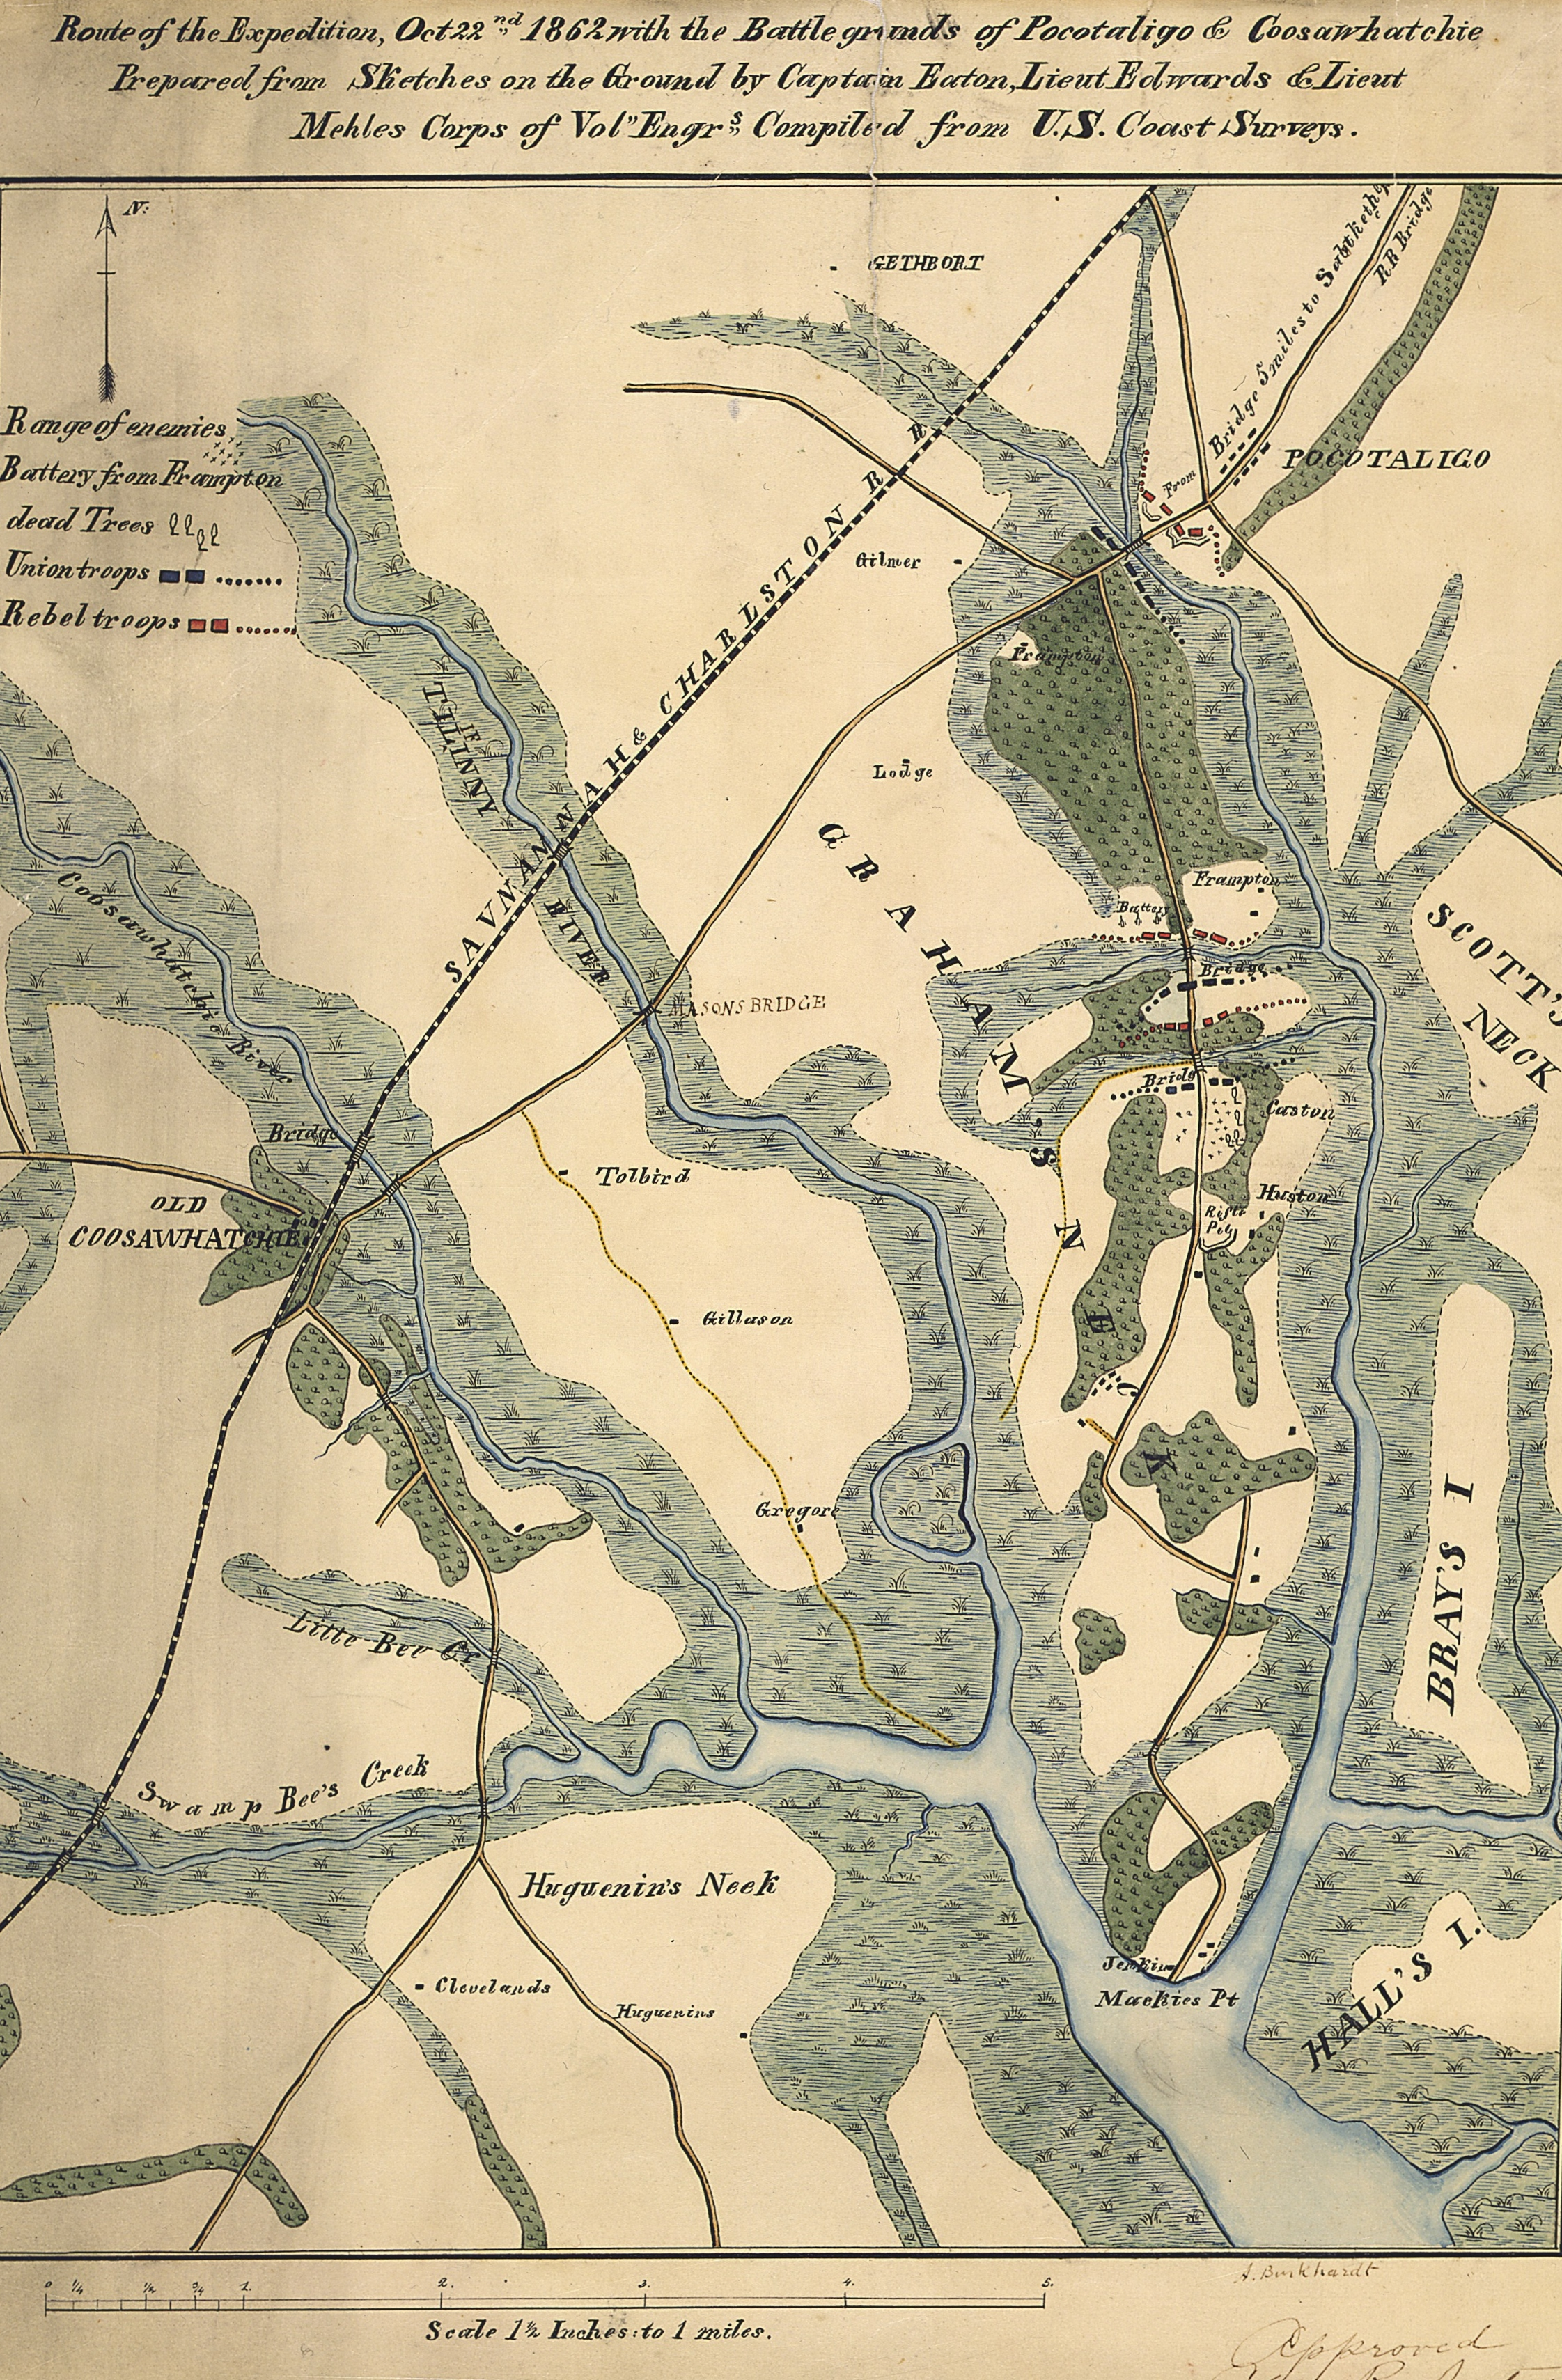 union army map of the pocotaligo coosawhatchie expedition 21 23 october 1862